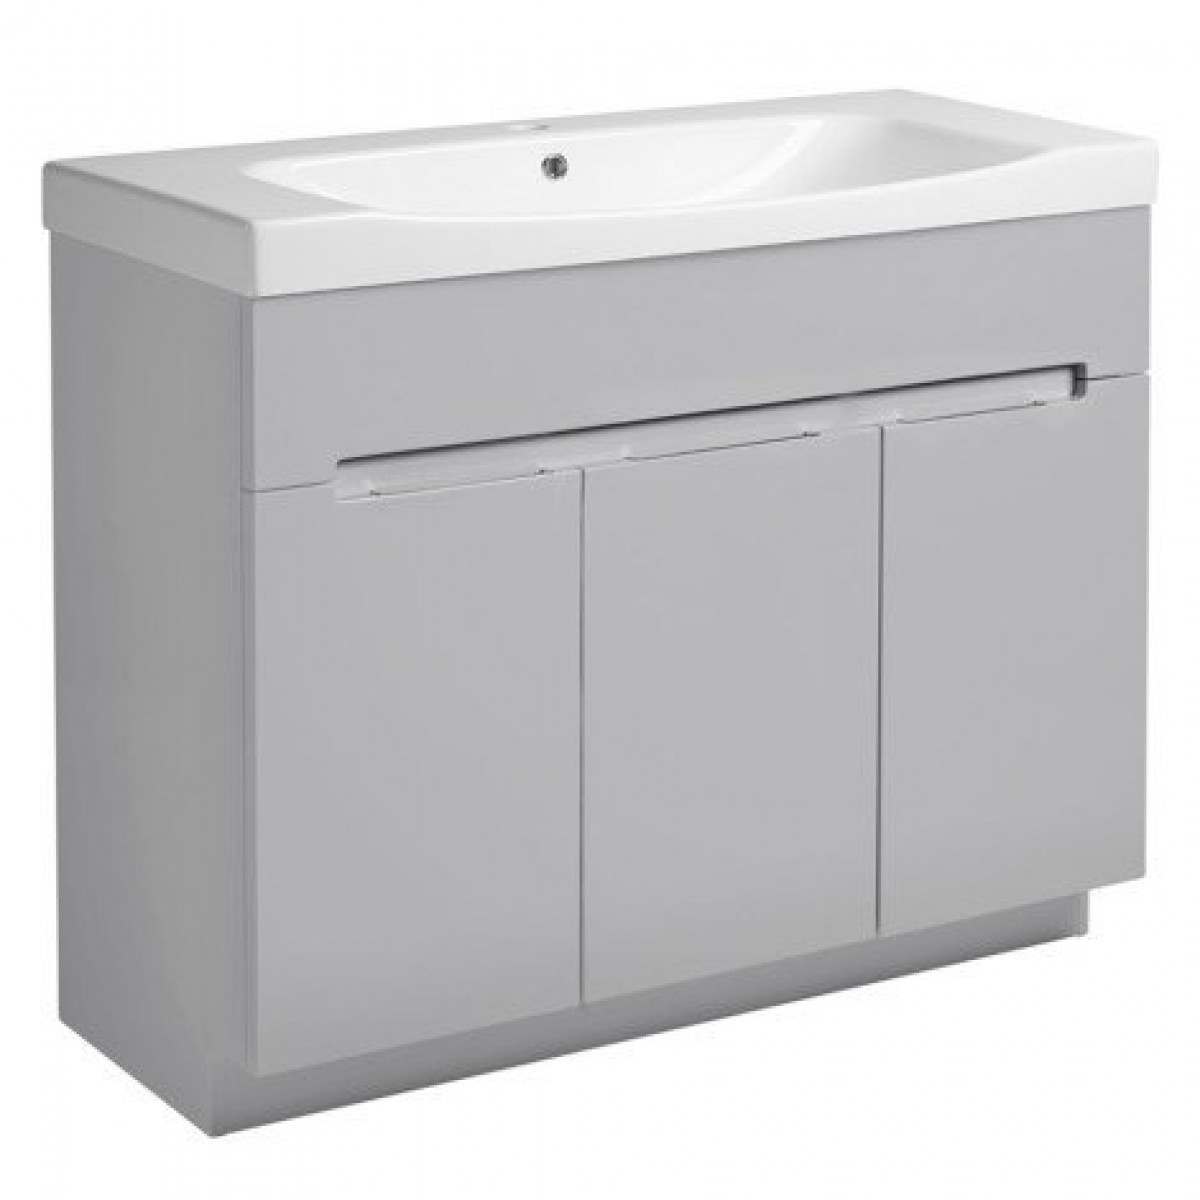 Roper rhodes diverge gloss light grey 1000mm freestanding for Bathroom mirror cabinets 900mm and 1000mm